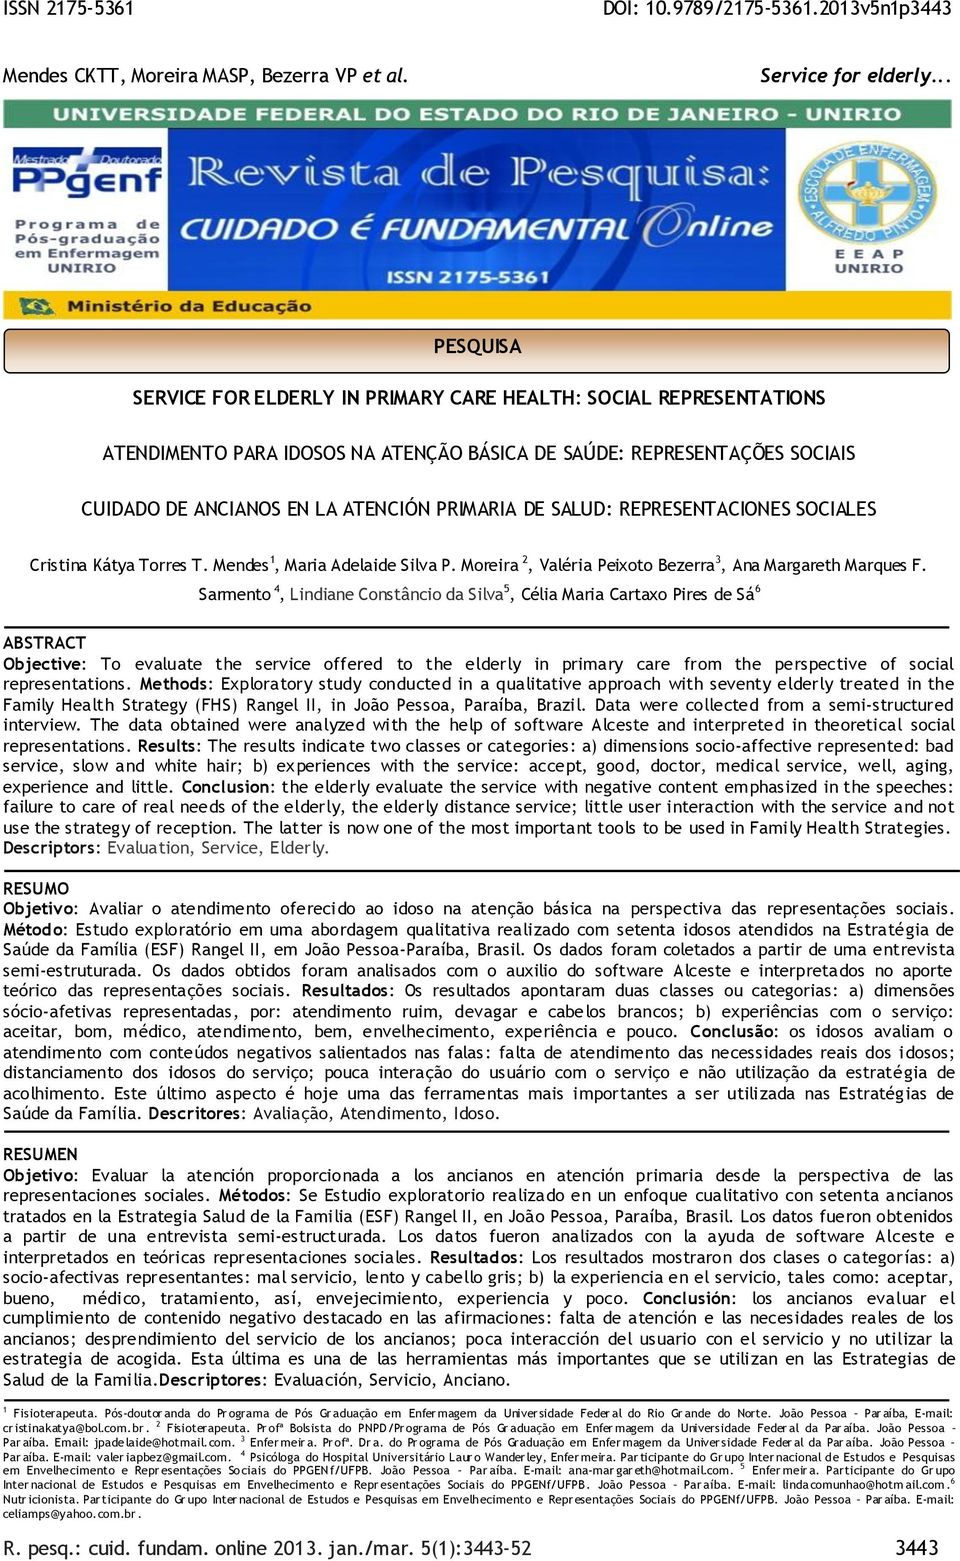 Sarmento 4, Lindiane Constâncio da Silva 5, Célia Maria Cartaxo Pires de Sá 6 ABSTRACT Objective: To evaluate the service offered to the elderly in primary care from the perspective of social